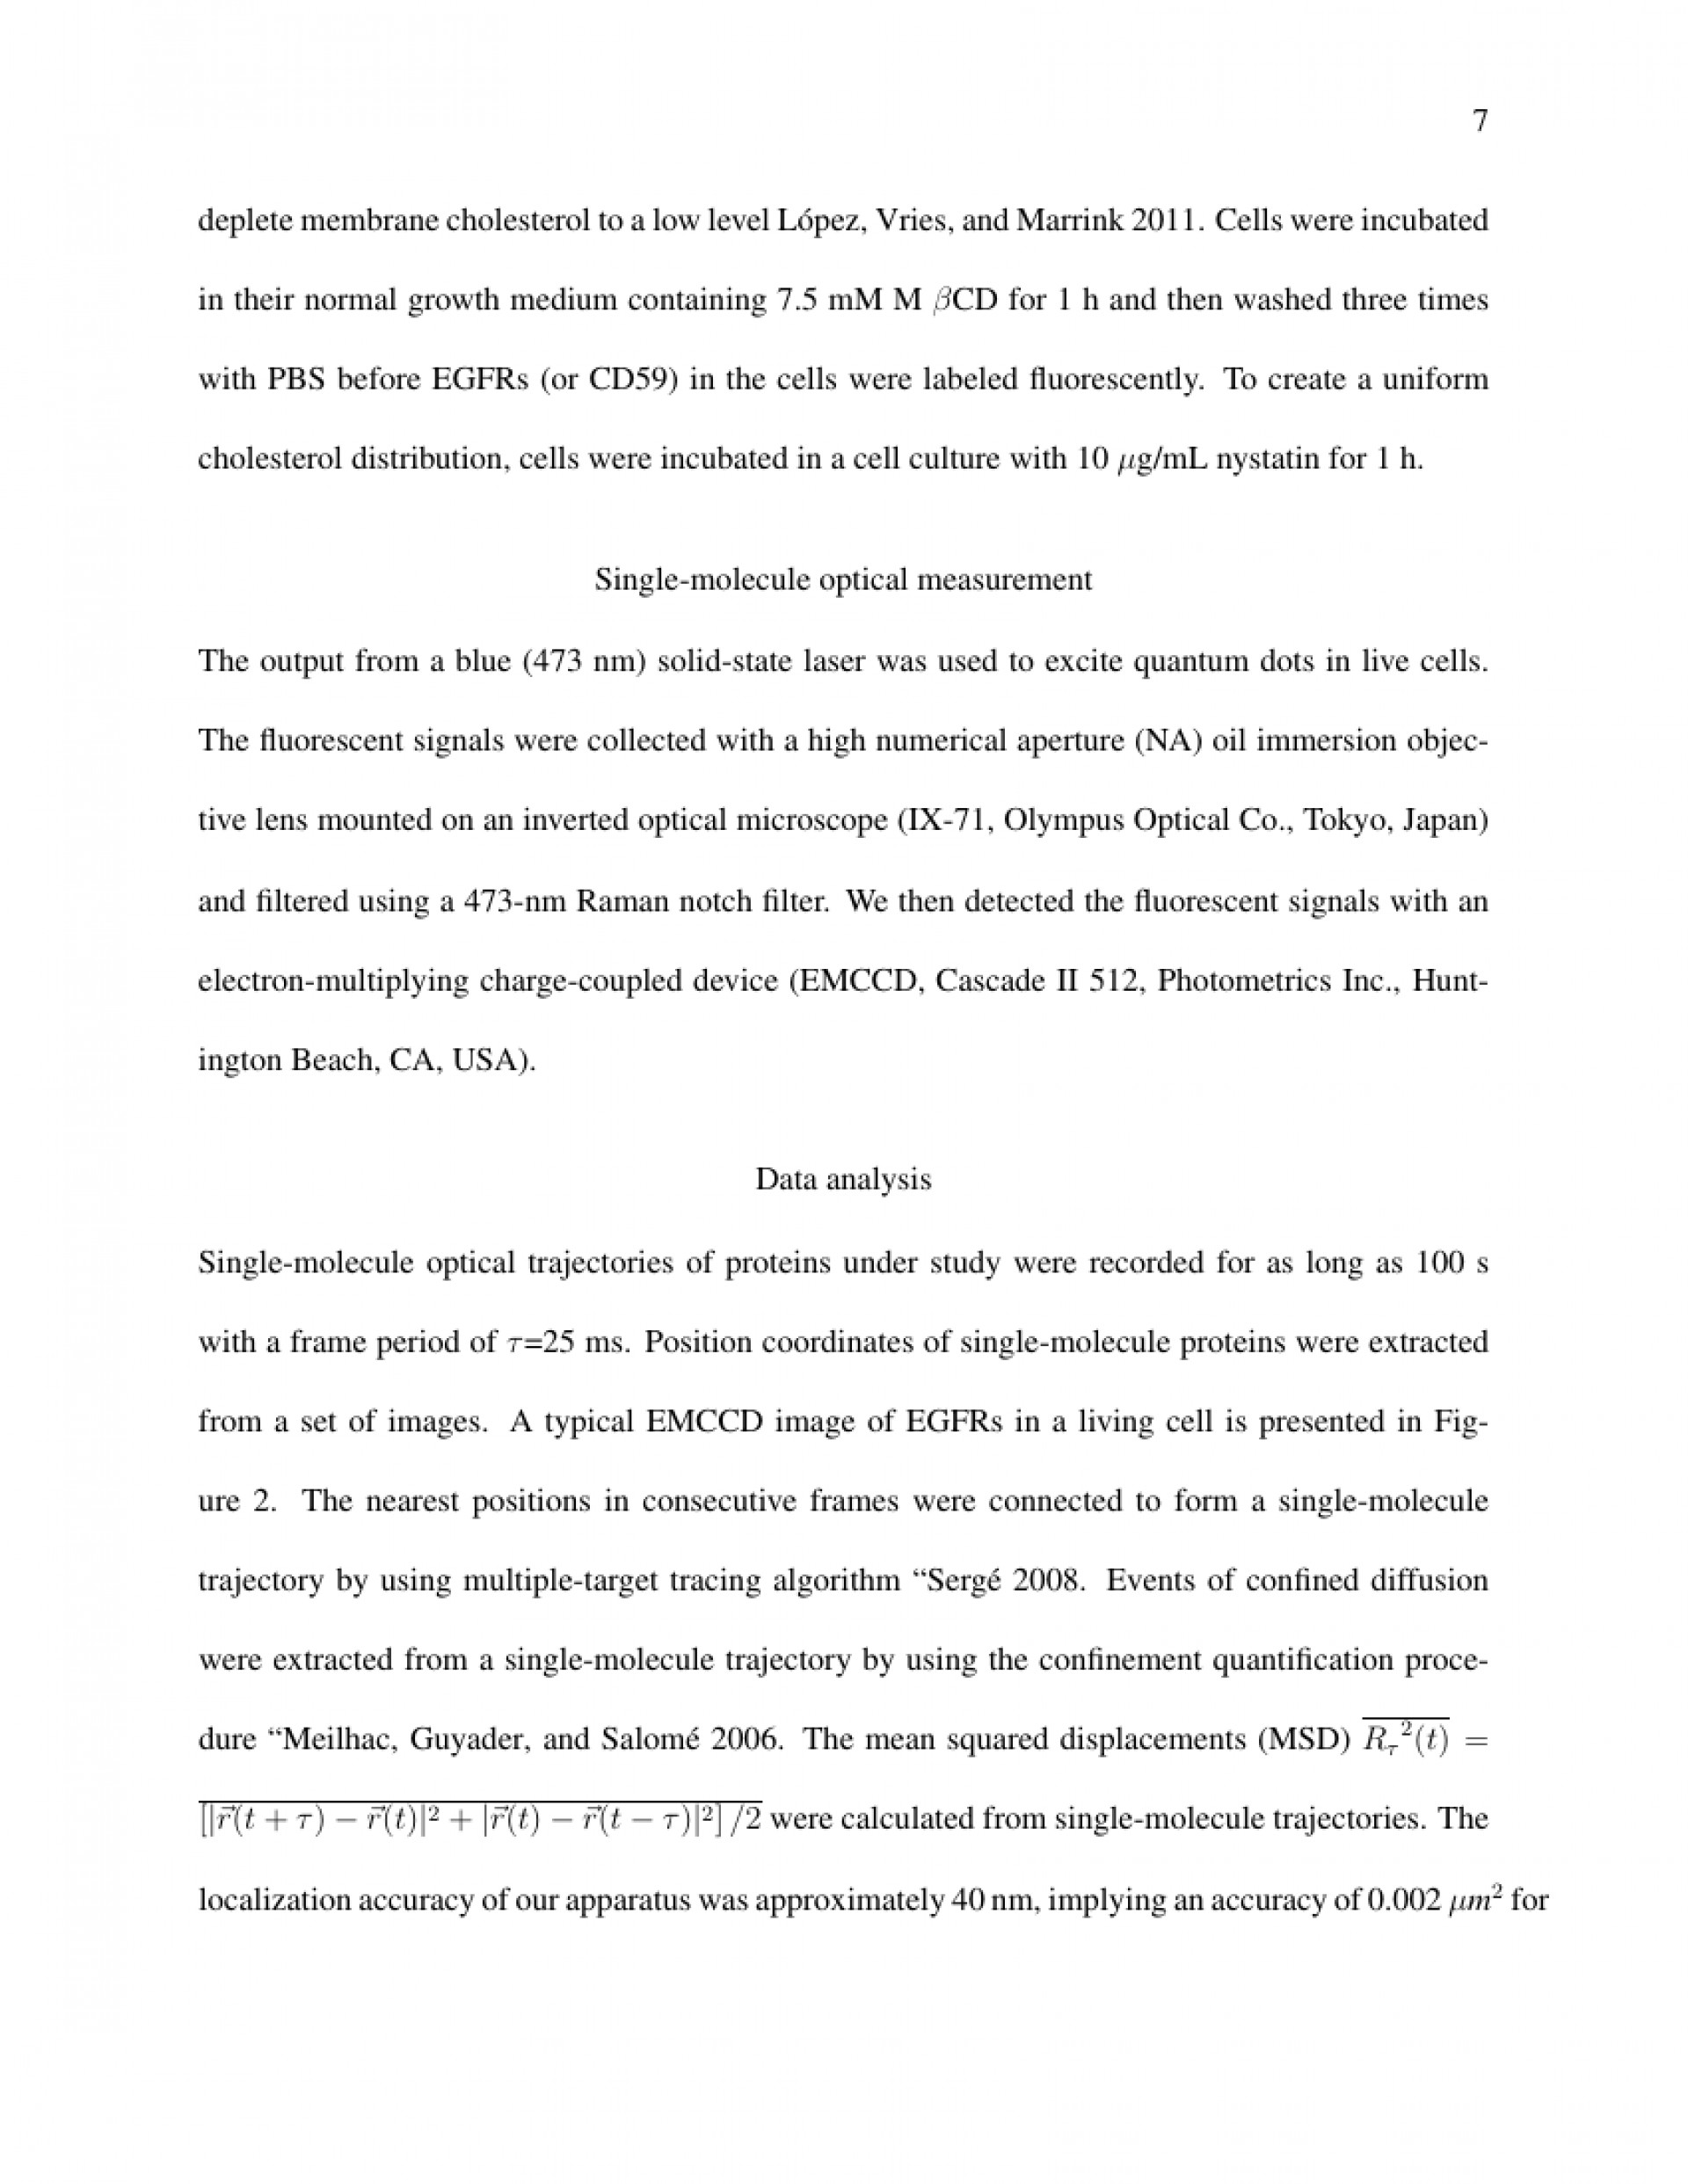 003 Research Paper Article Format Of Awesome Papers Ieee For Publication Pdf 1920